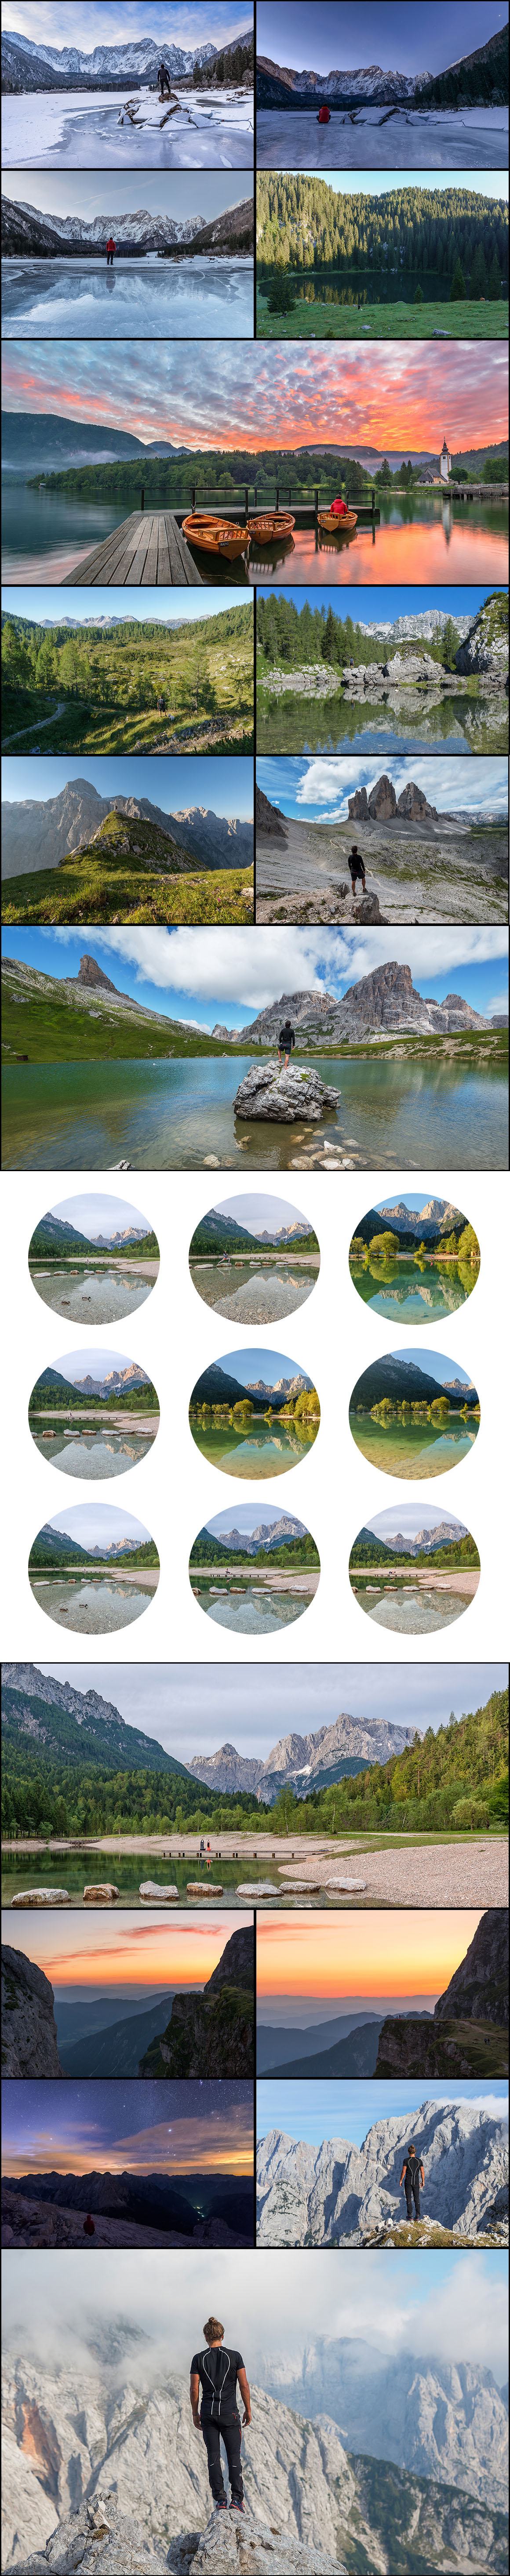 1-preview-people-in-landscapes